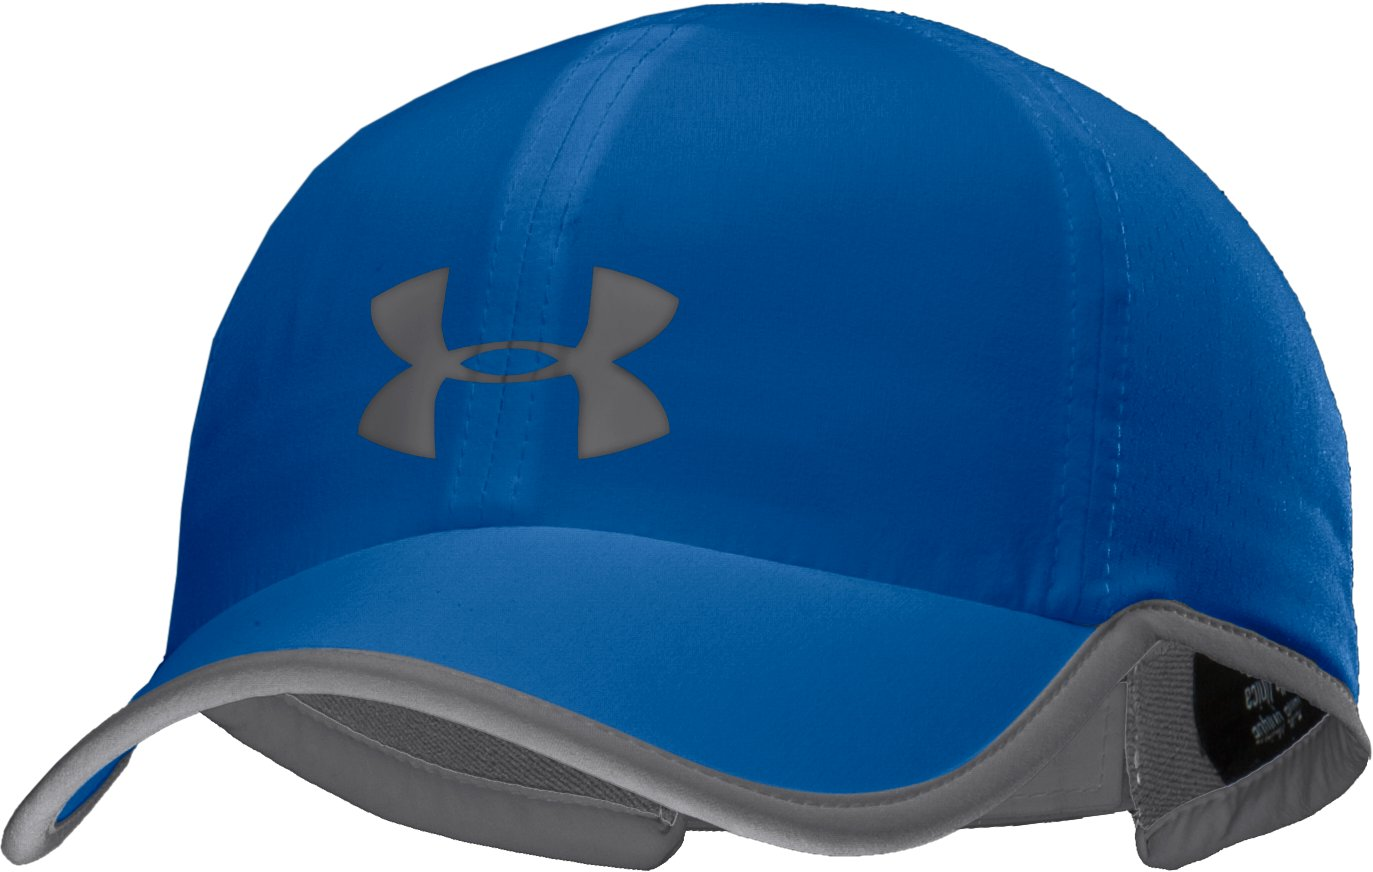 Men's HeatGear® ArmourVent™ Adjustable Cap, SUPERIOR BLUE